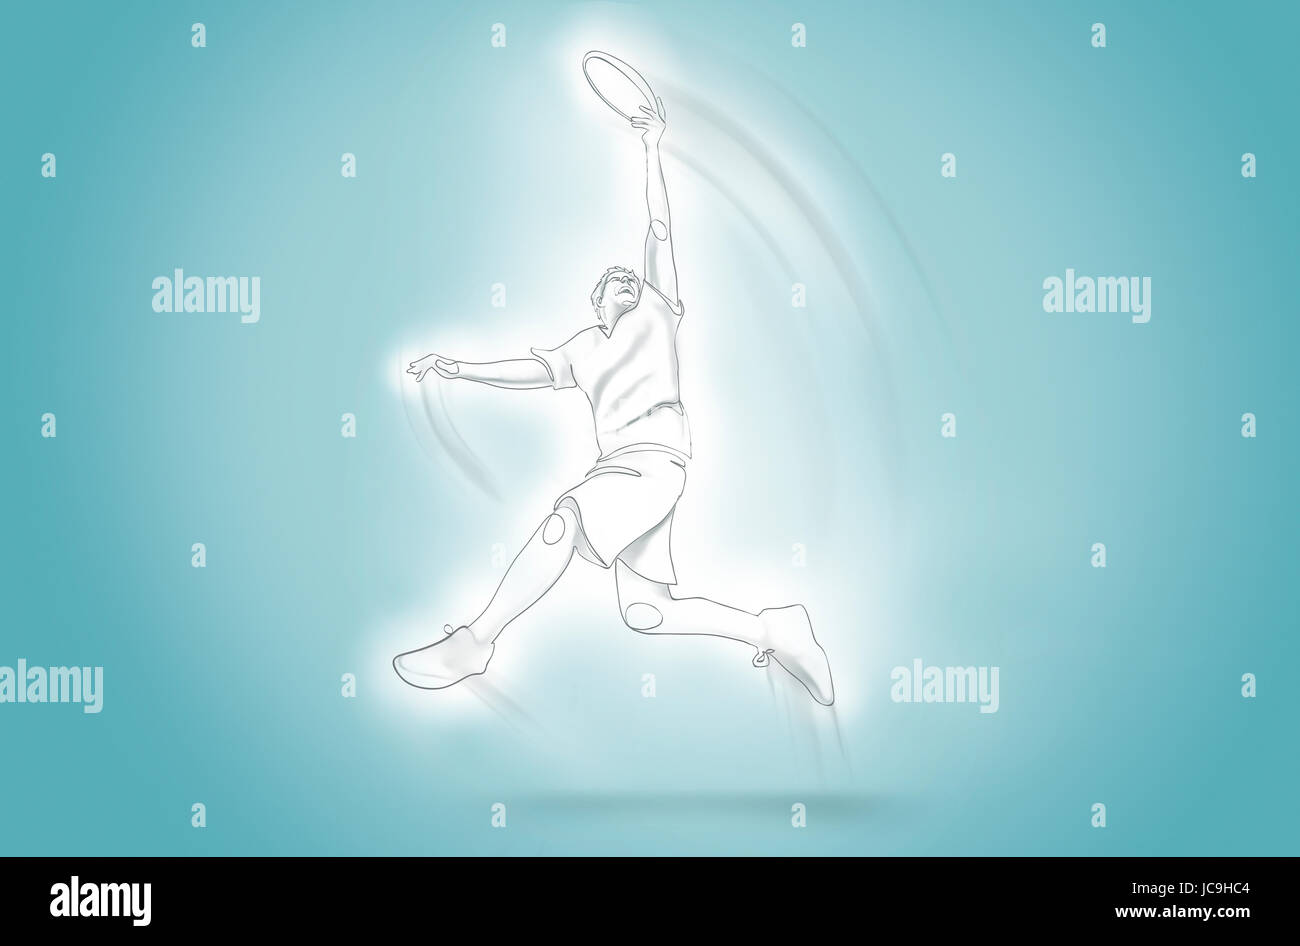 One Line Art Animation : Man jump catches frisbee one line art stock photo royalty free